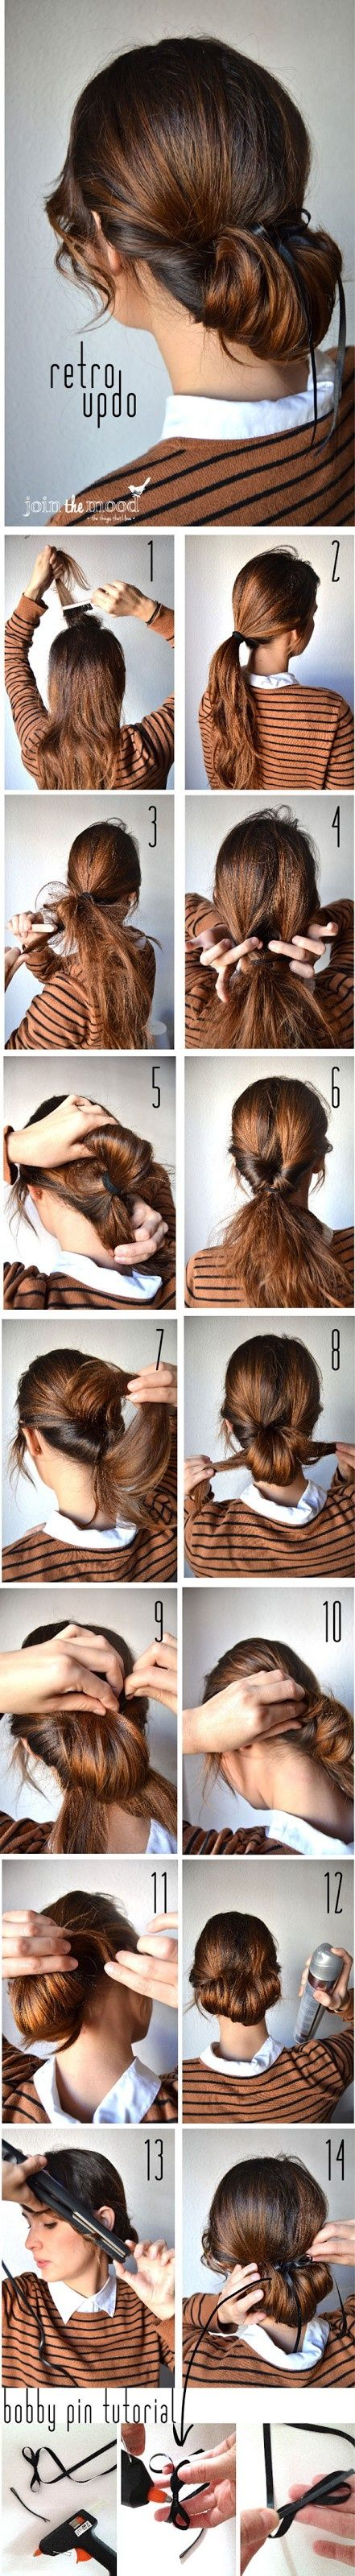 Make a retro updo hairstyles tutorial beaty pinterest easy